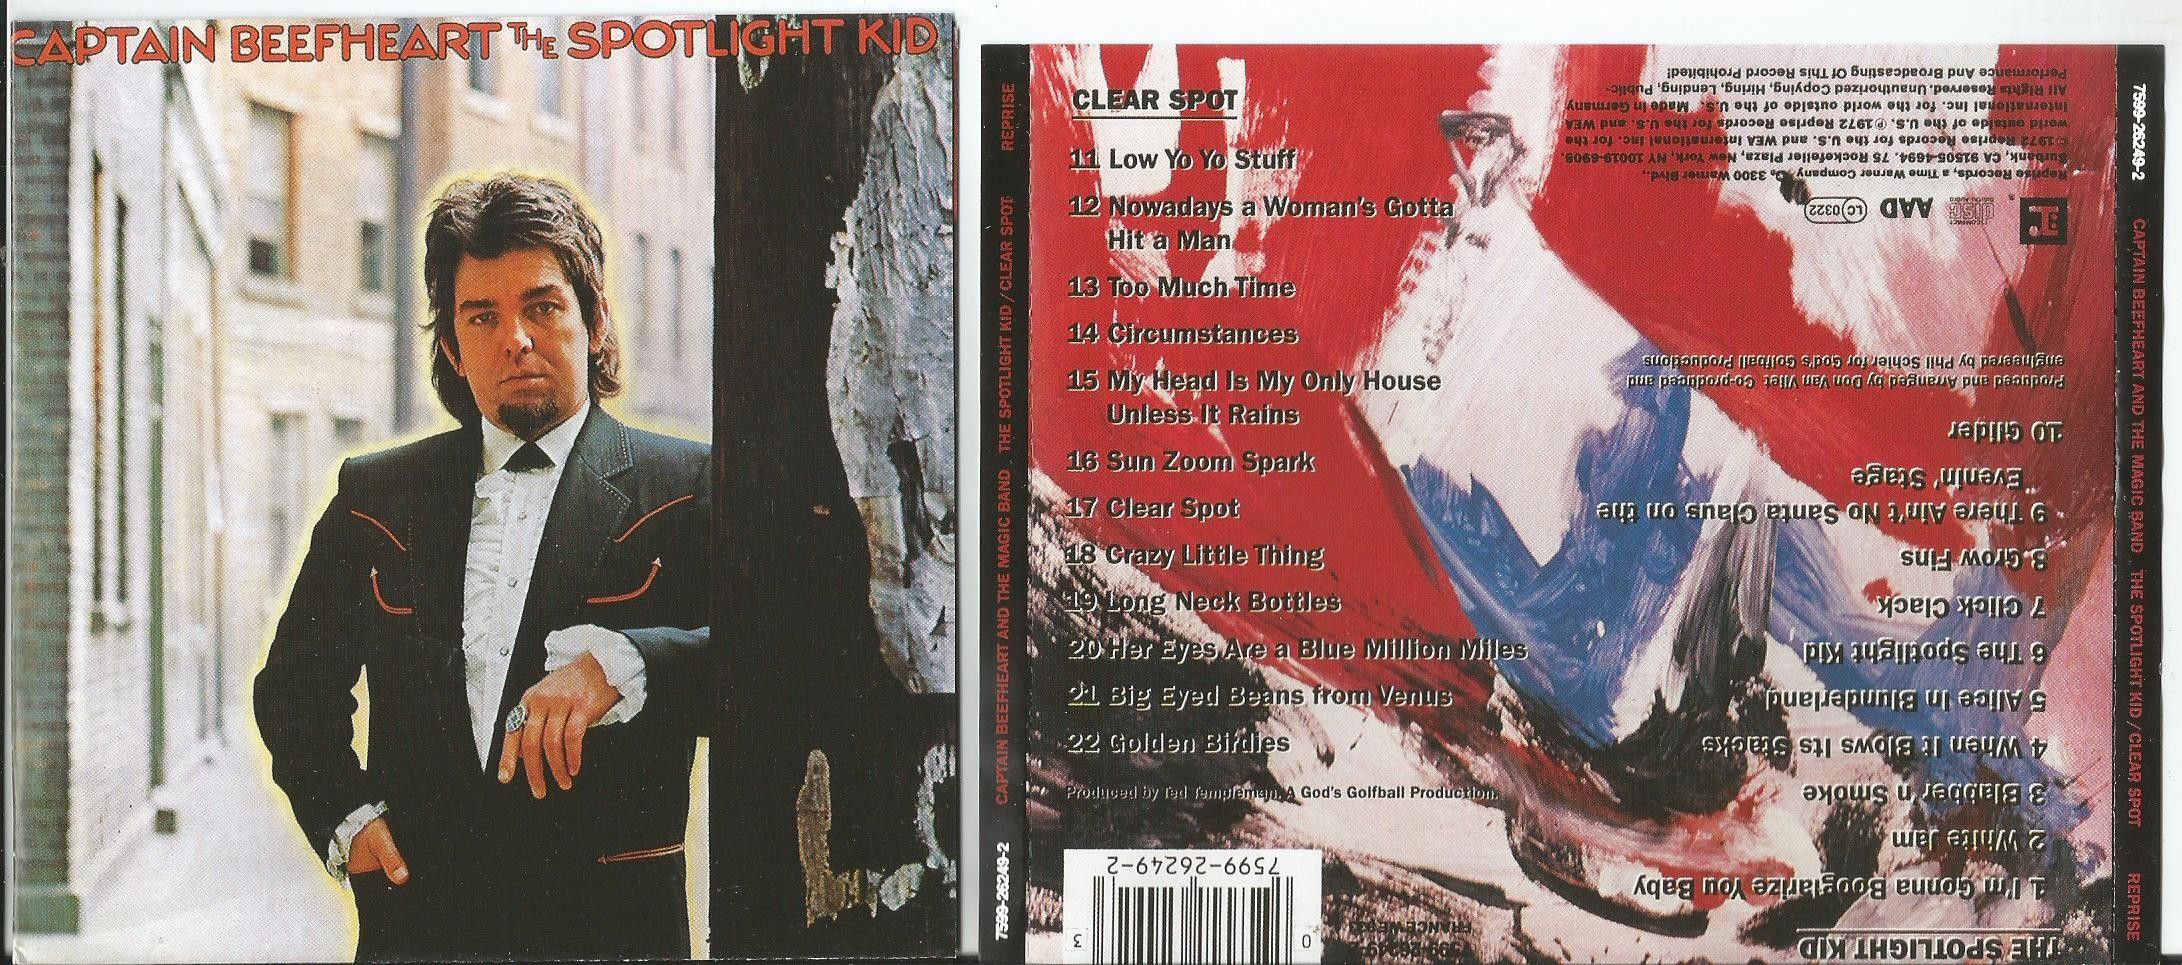 CAPTAIN BEEFHEART &THE MAGIC BAND - The Spotlight Kid/ Clear Spot (2 In 1cd, Poster Mode Booklet)